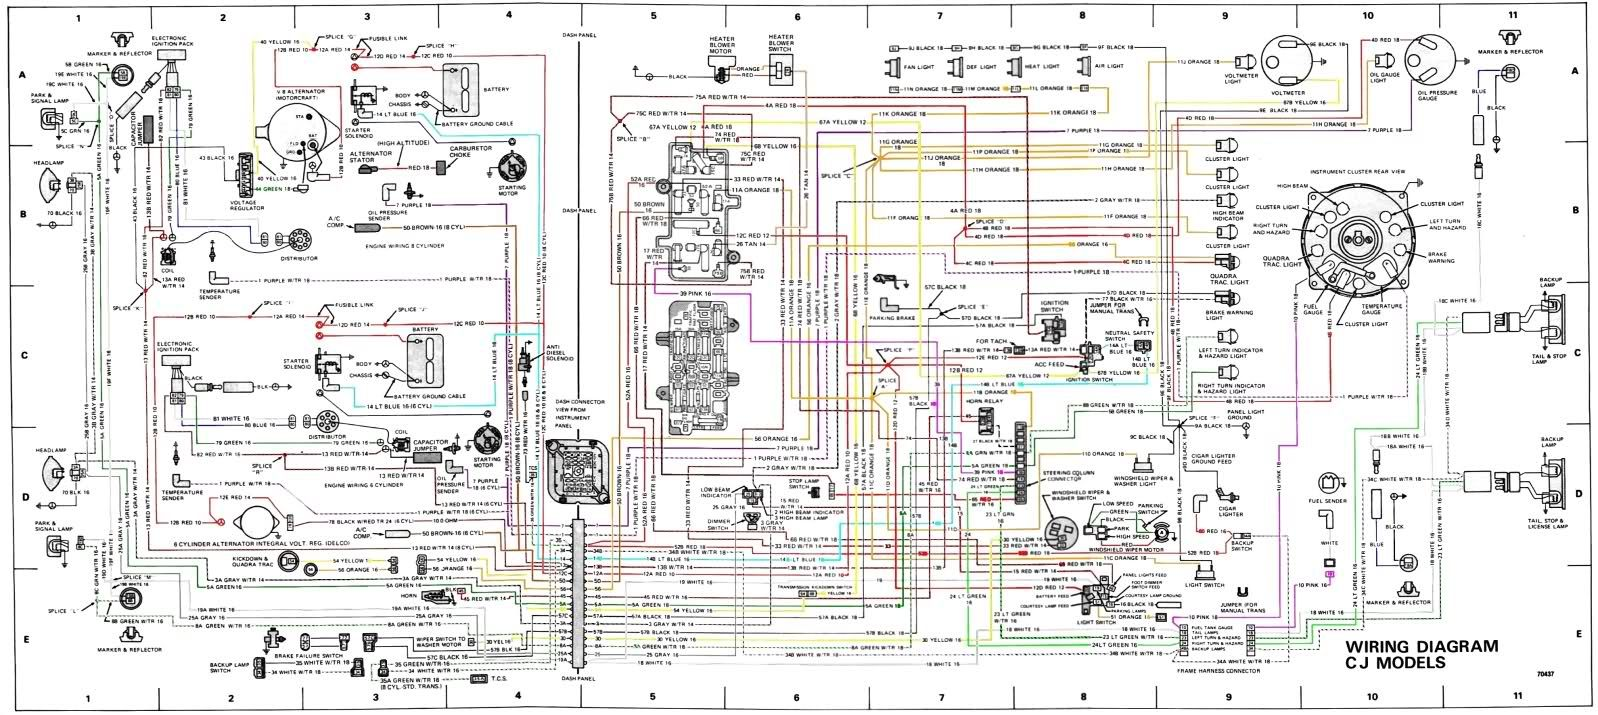 hight resolution of jeep cj7 wiring diagram wiring diagram m6jeep cj7 wiring diagram unlimited wiring diagram jeep cj7 fuel